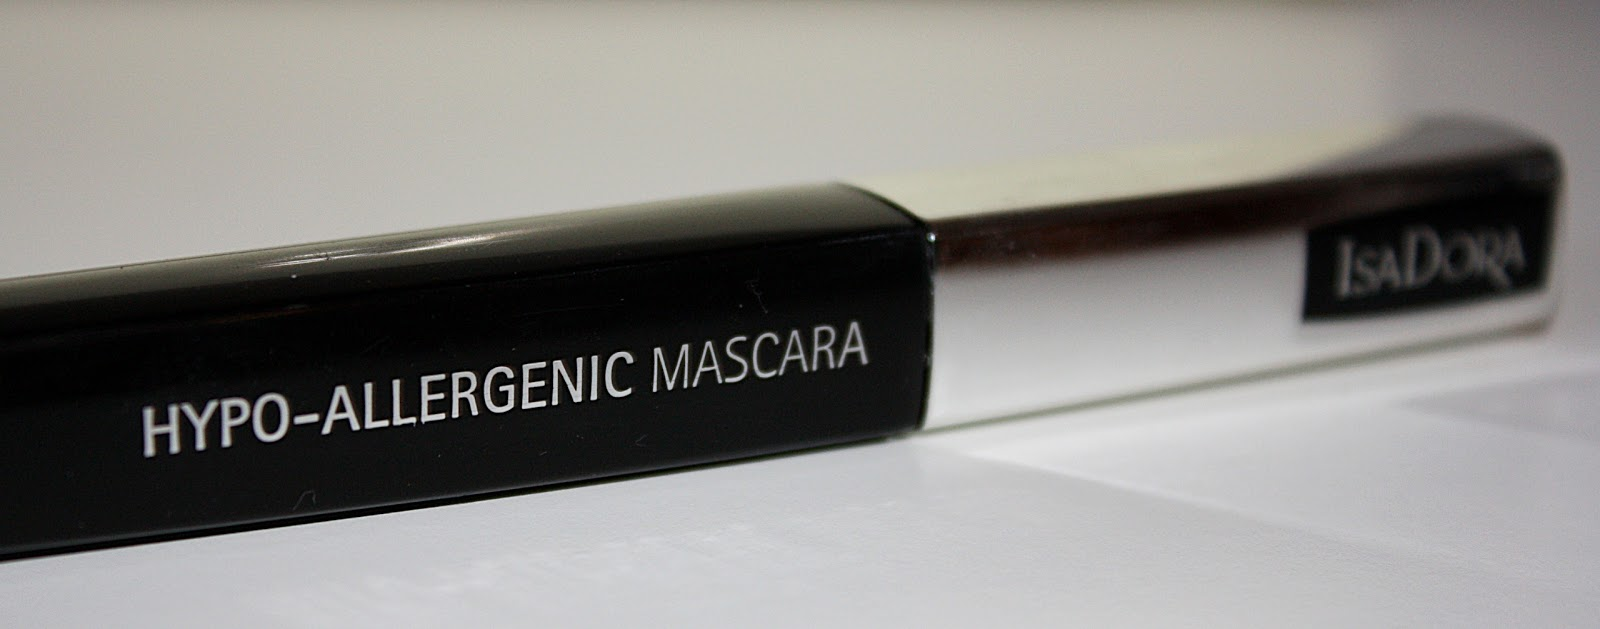 4bb5be8e41a Agnes Beauty Corner: Review of IsaDora Hypo-allergenic Mascara